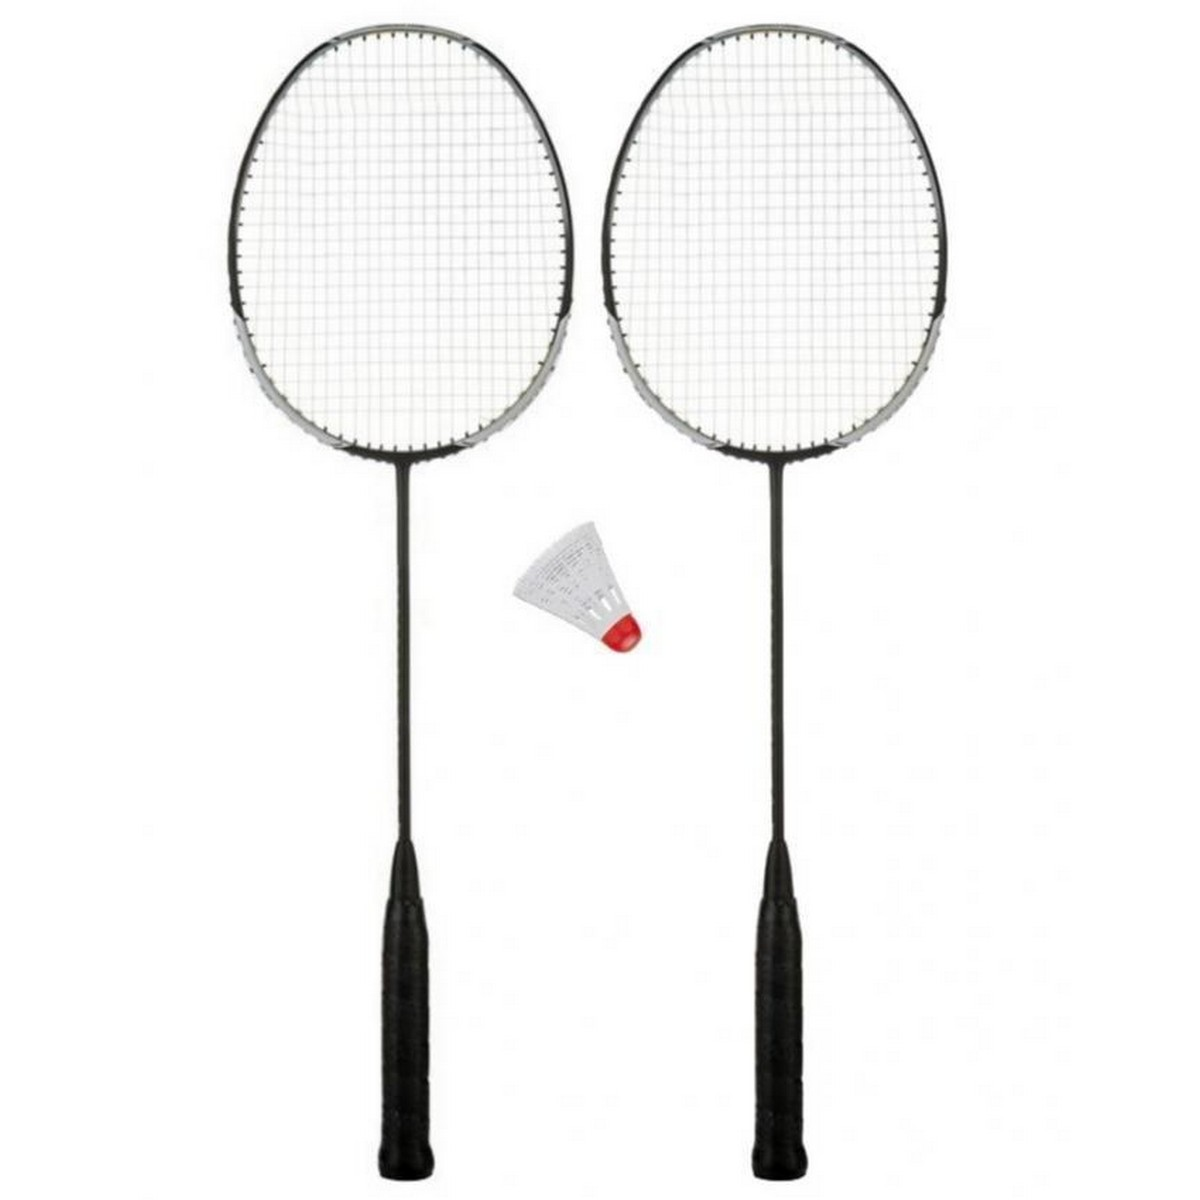 2 Badminton Rackets For Kids with free Shuttle